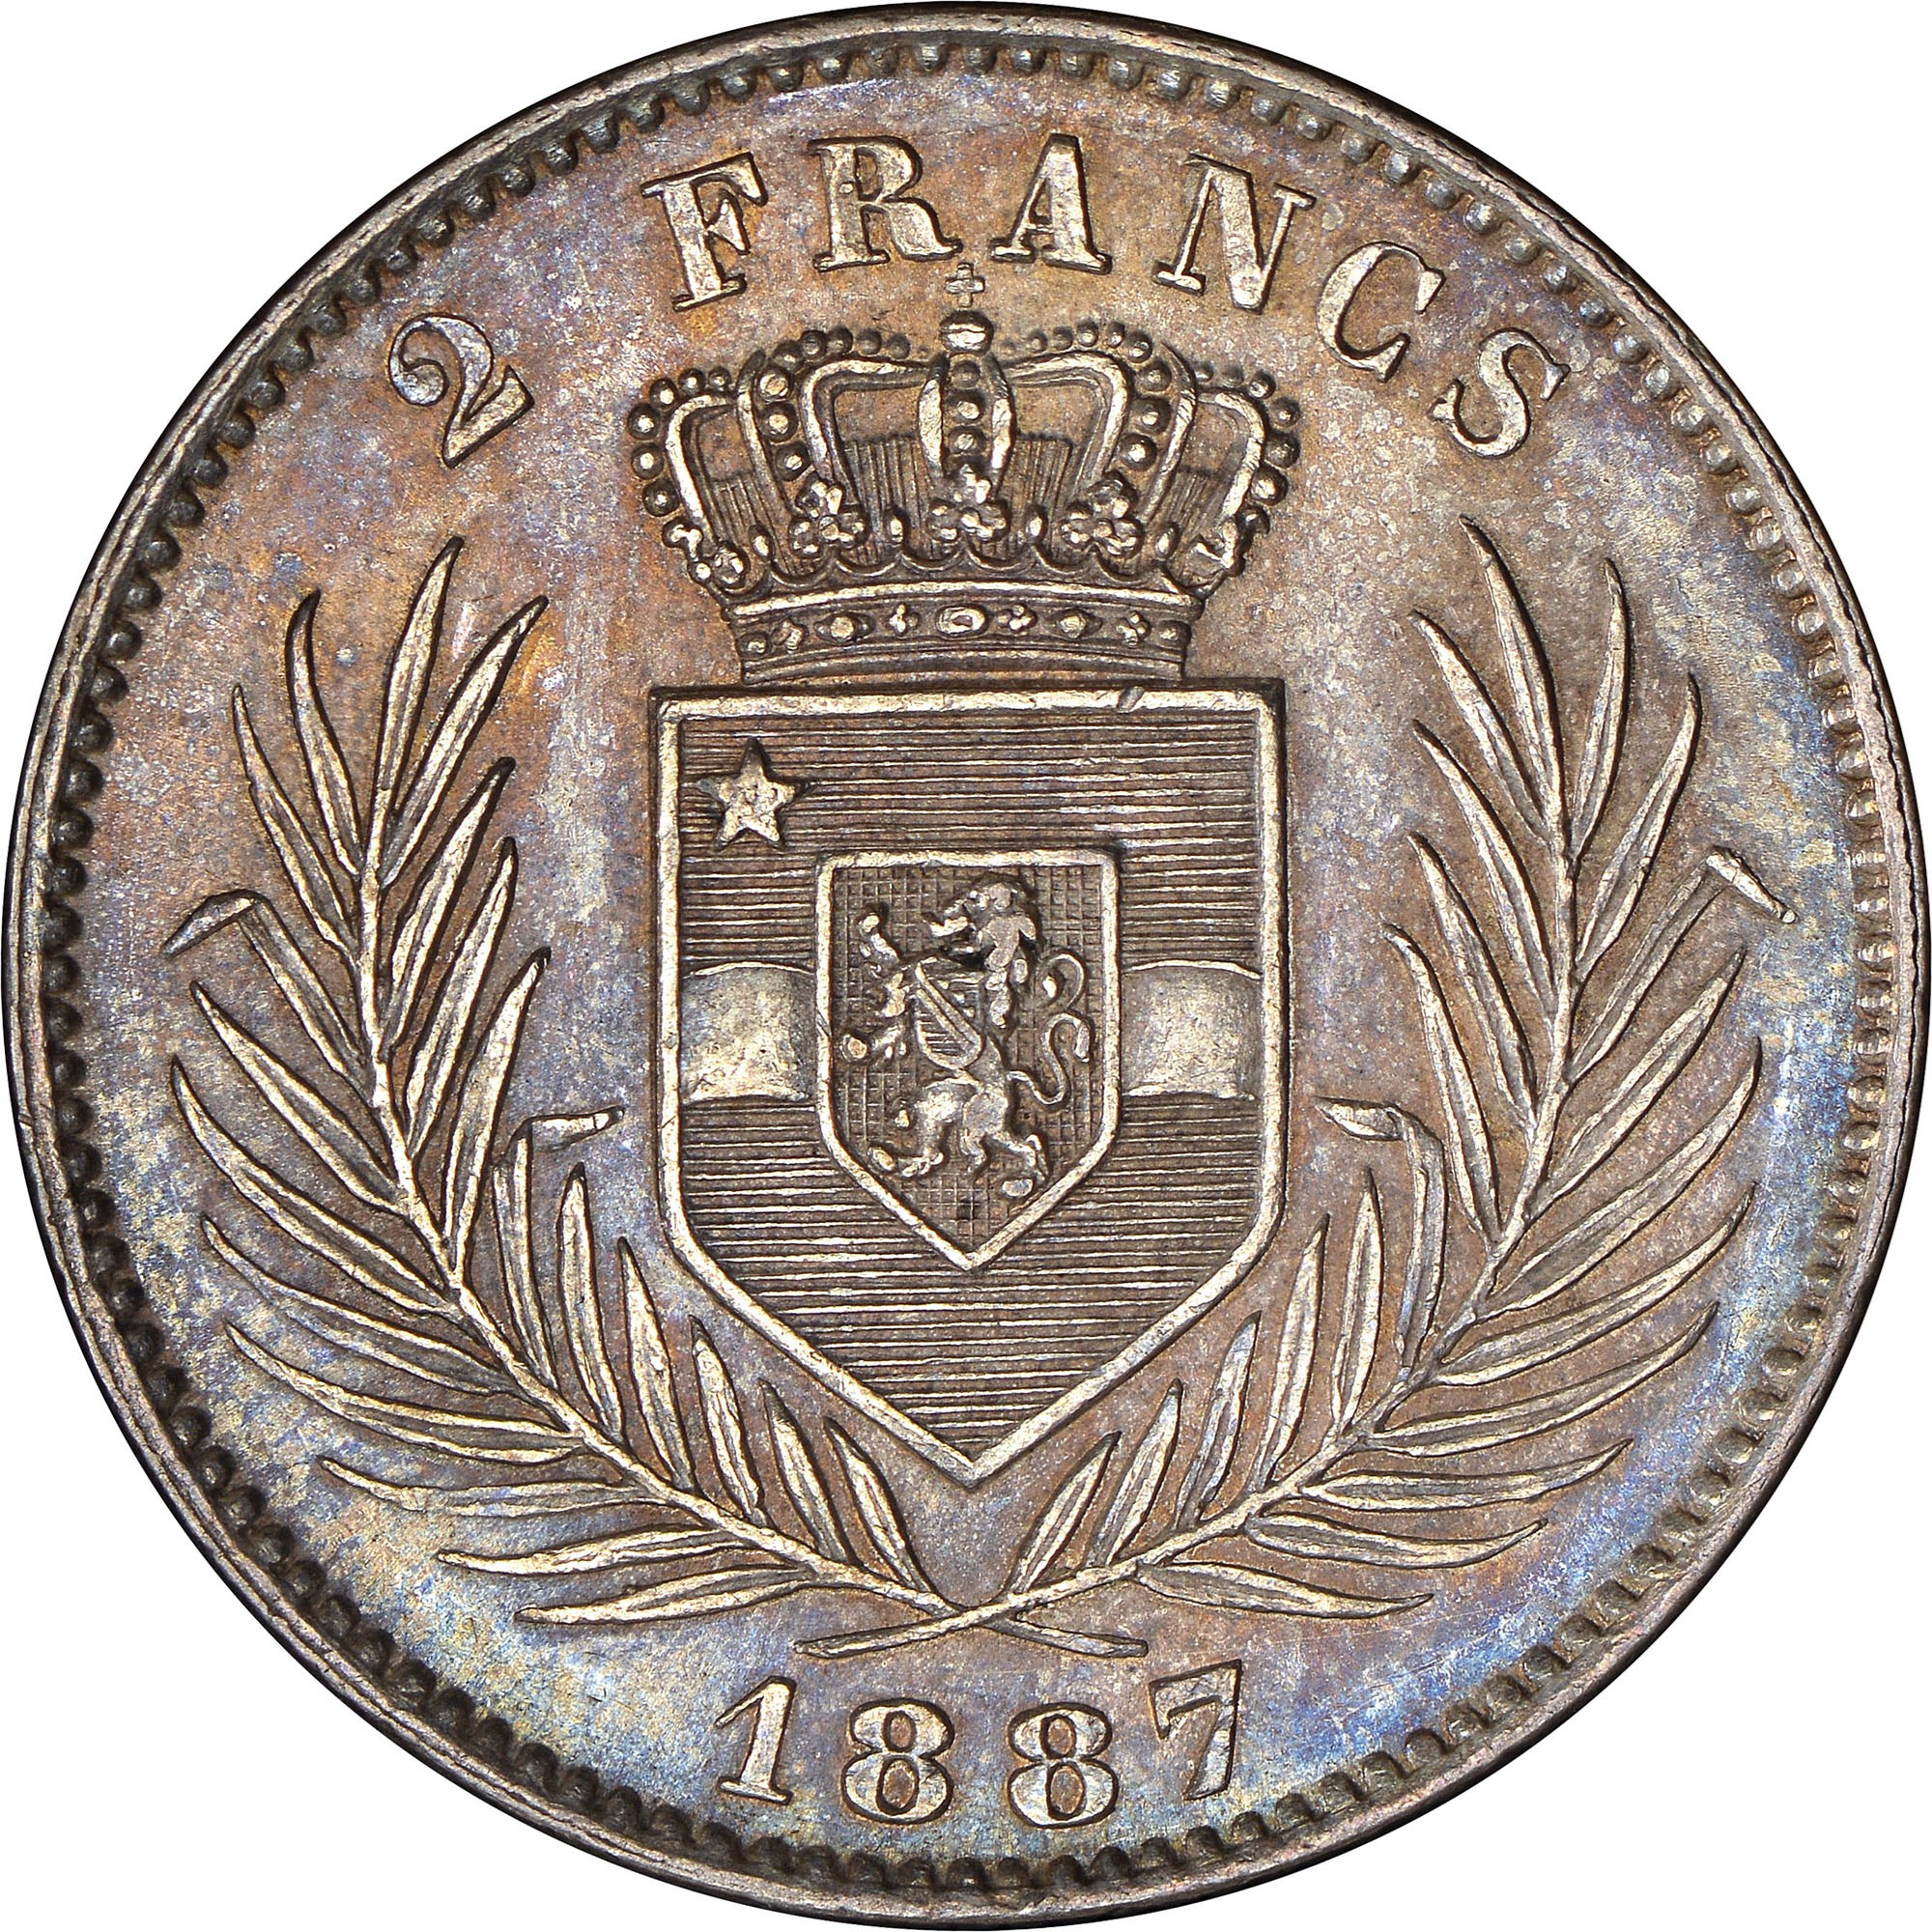 Congo Free State 2 Francs reverse